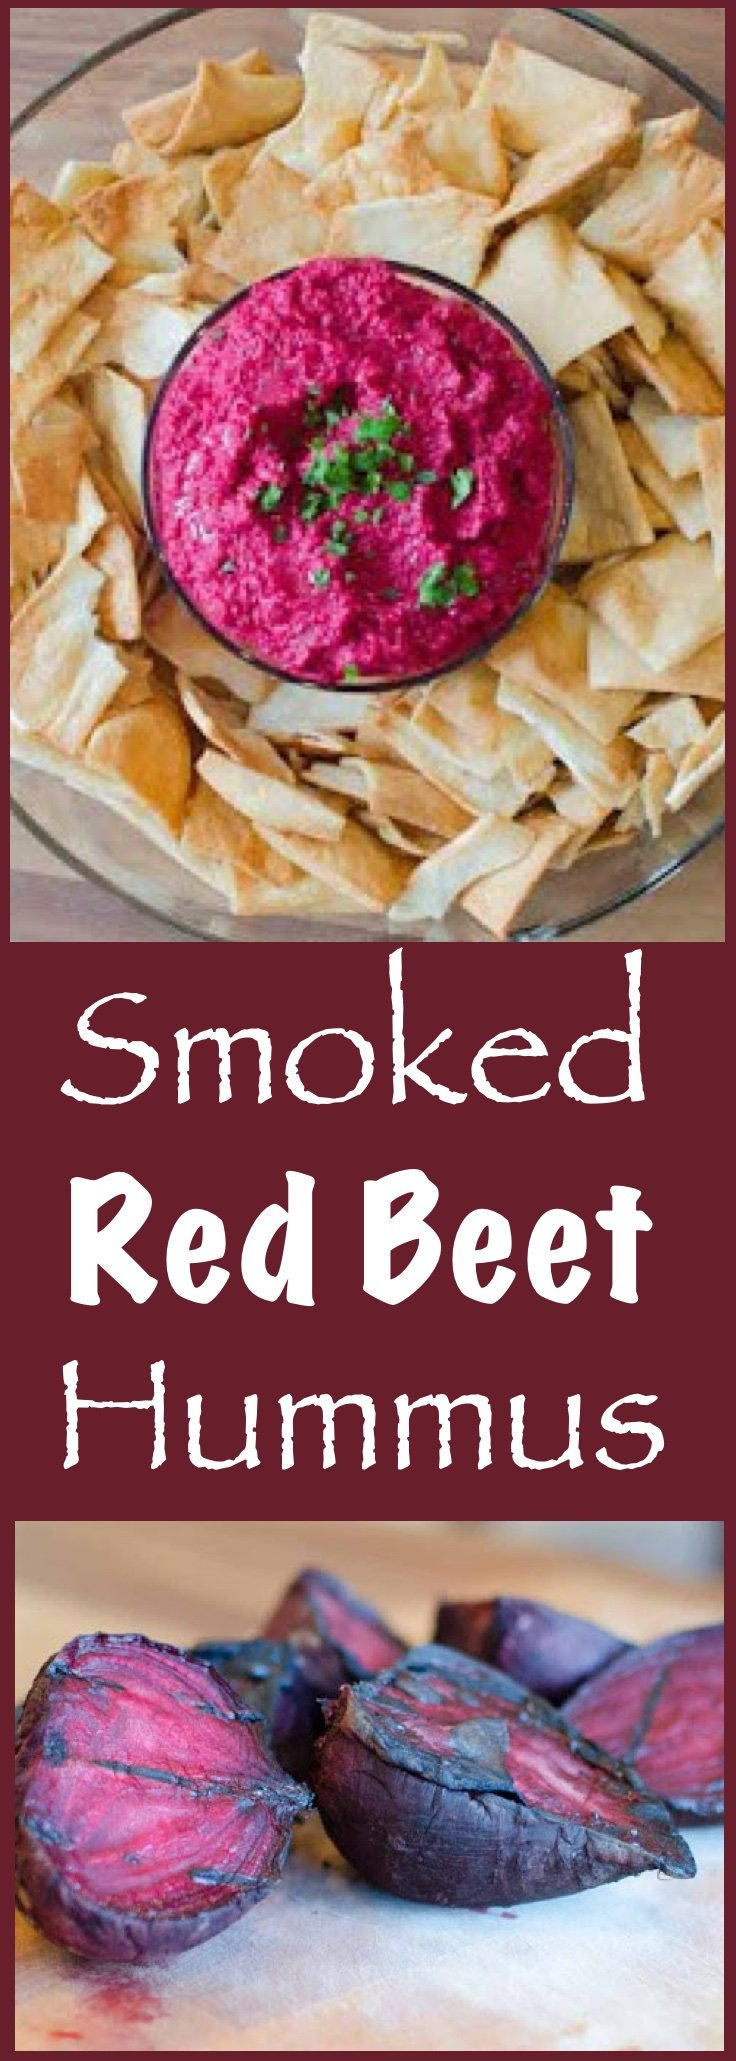 Not just Roasted Beets....Roasted AND Smoked Beets....make a killer hummus!!